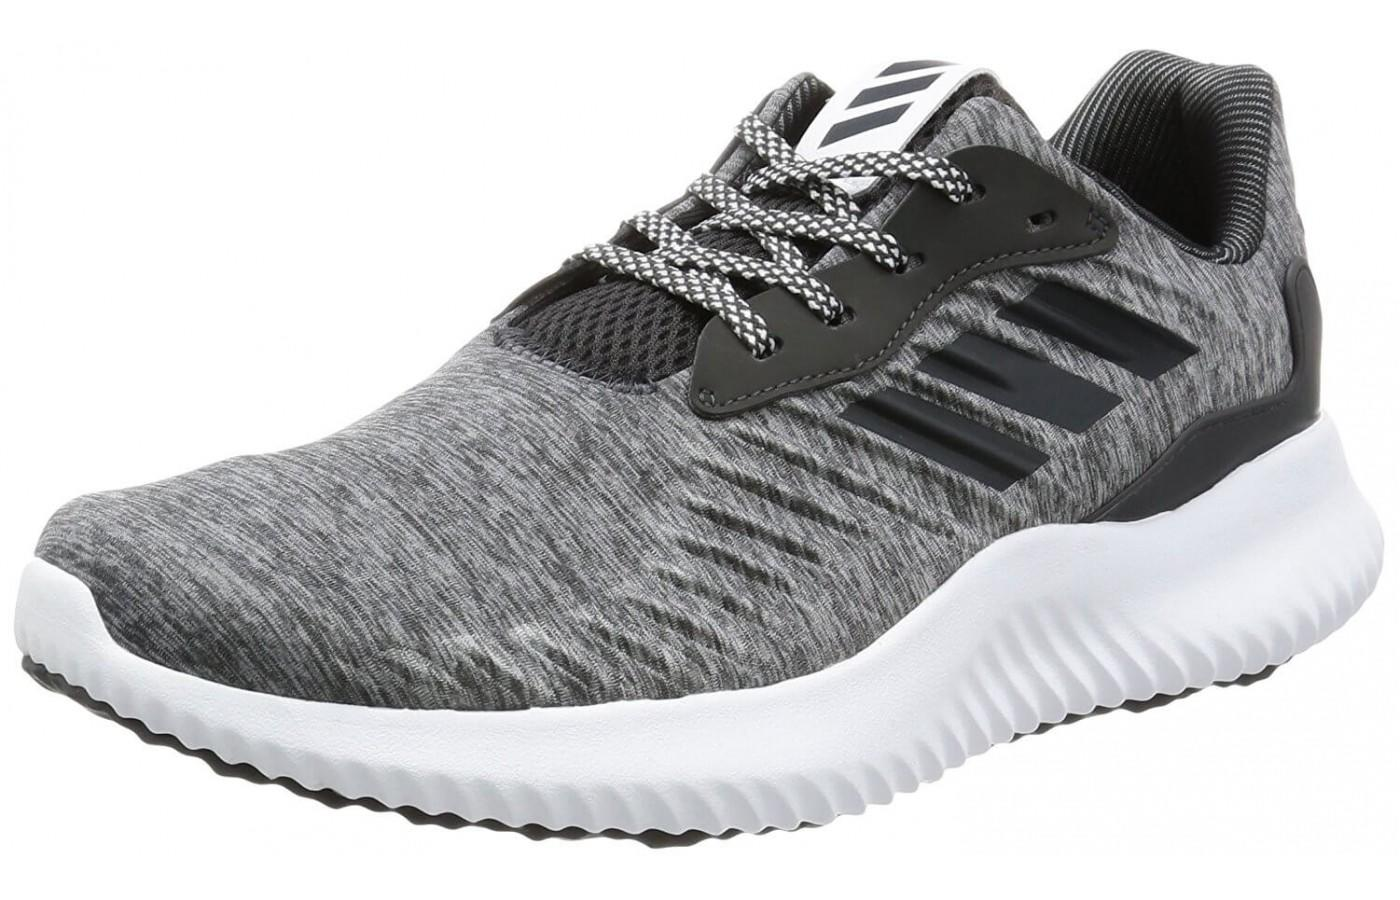 2ba153af02a0b Adidas Alphabounce RC Review - Buy or Not in May 2019